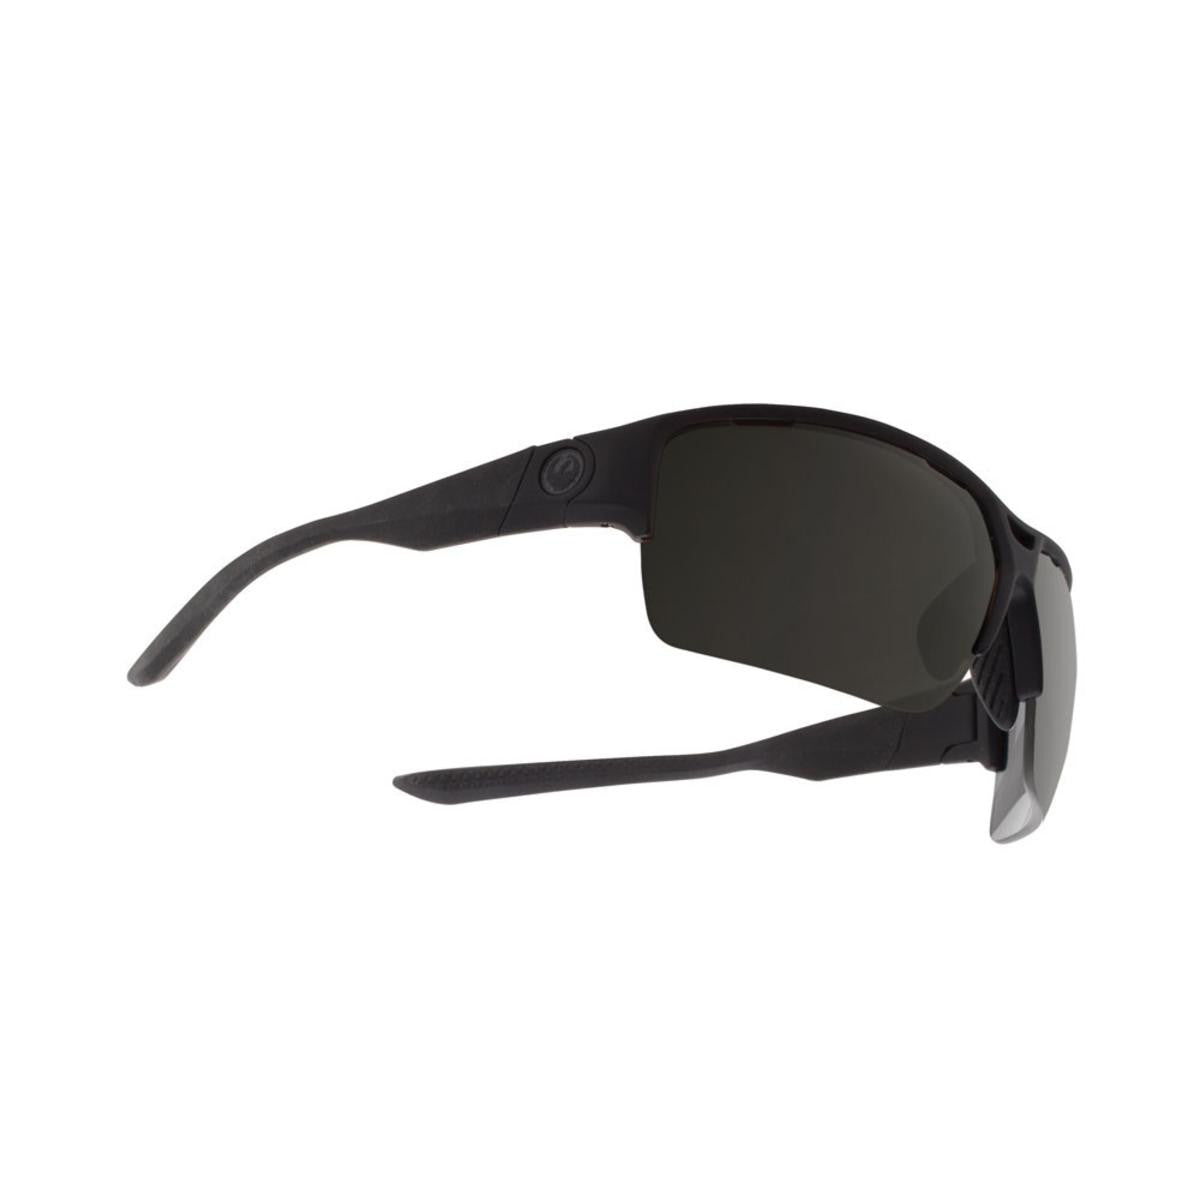 Dragon EnduroX Men's Sunglasses